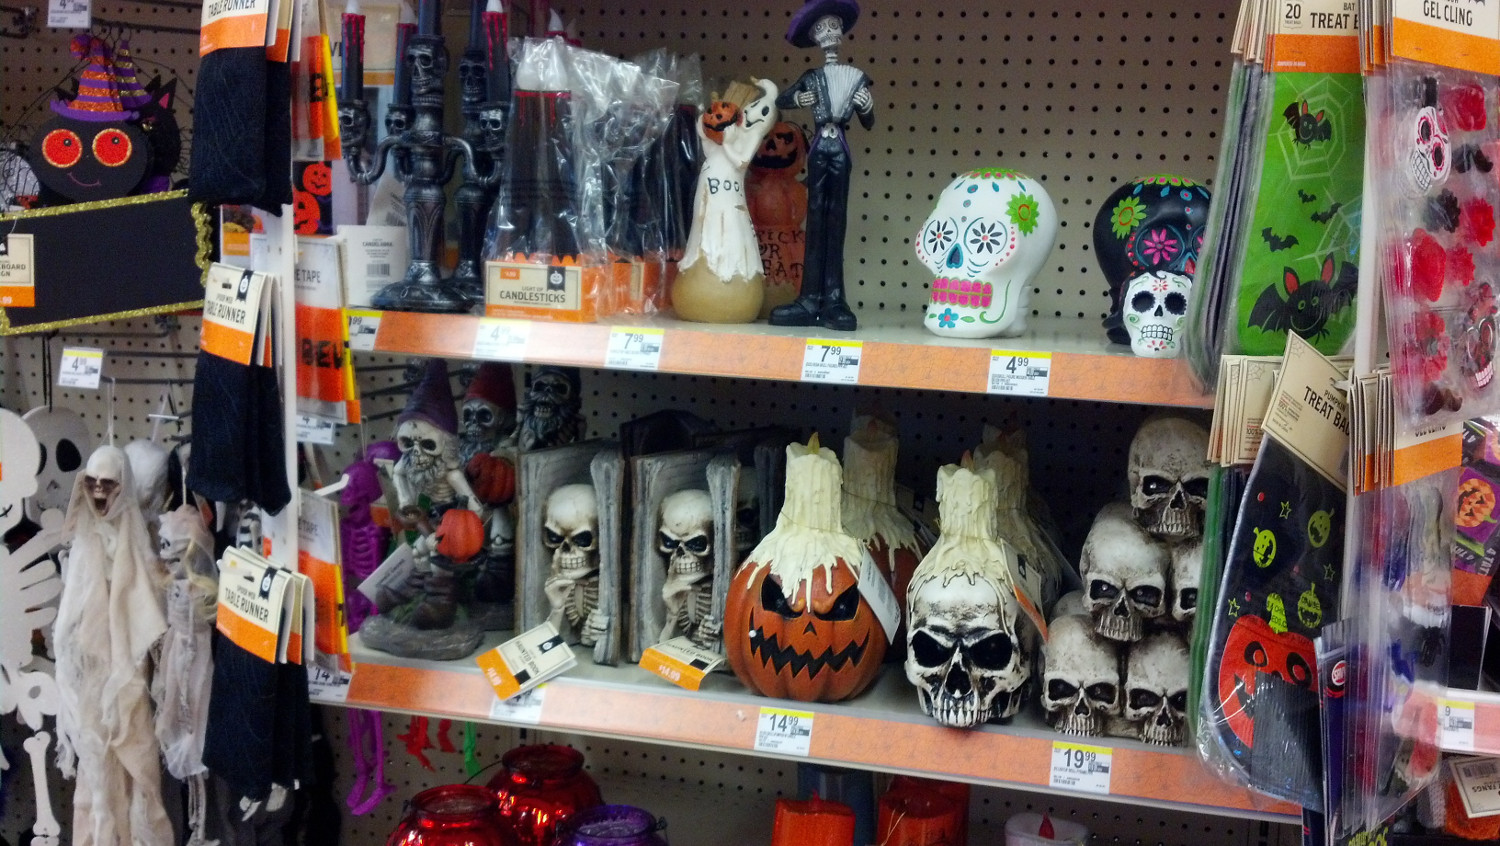 Walgreens Halloween Decorations 2020 Halloween 2015 Sighted: Walgreens (From Zombos' Closet)